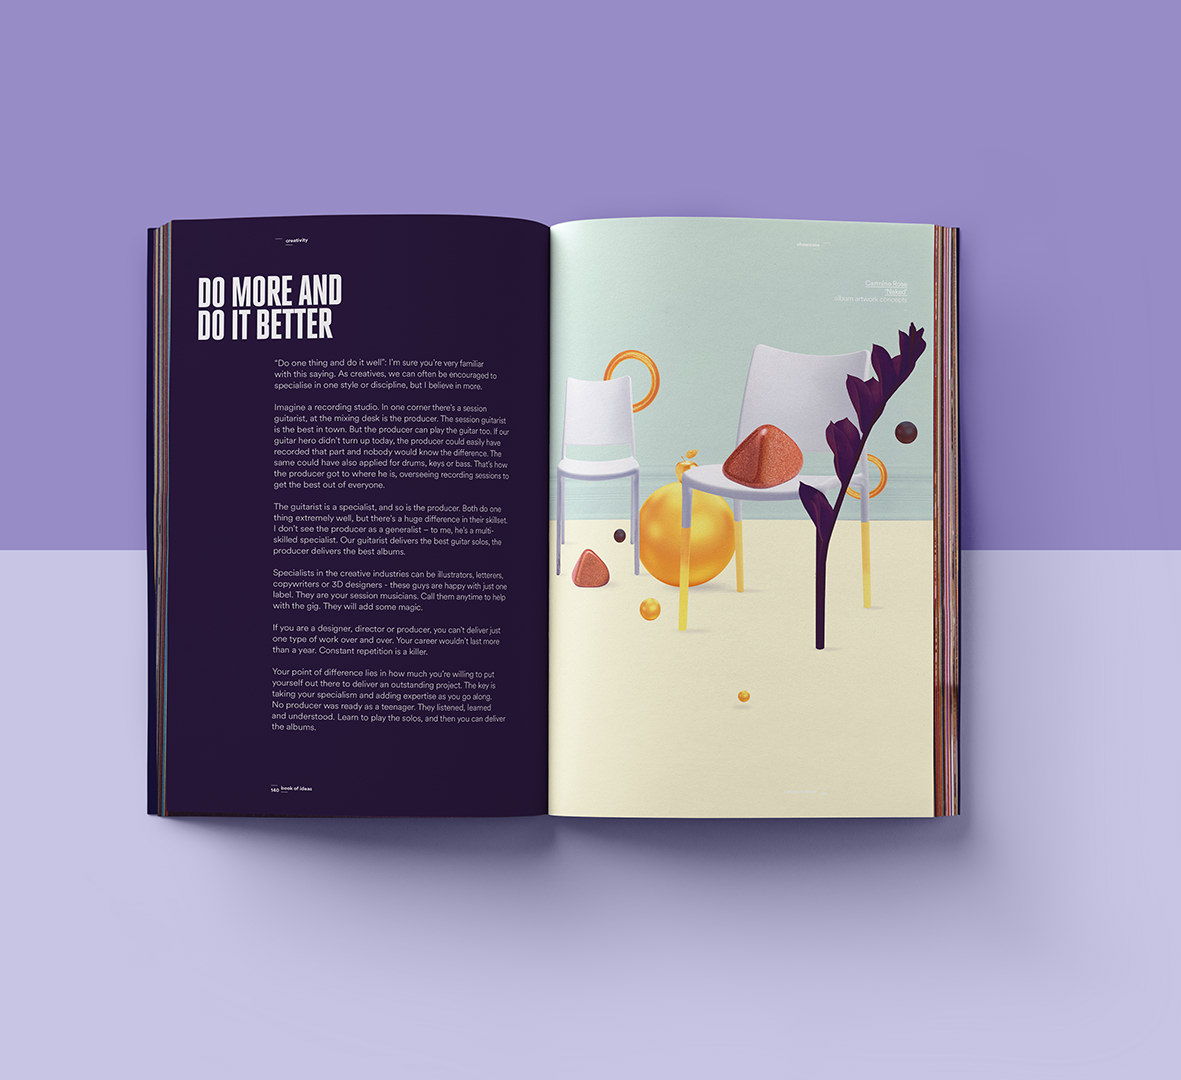 Content book of ideas a graphic design journal by radim malinic book of ideas is the product of what hes learned both when starting out in the industry and in the ten years since he decided to go it alone and embrace solutioingenieria Choice Image